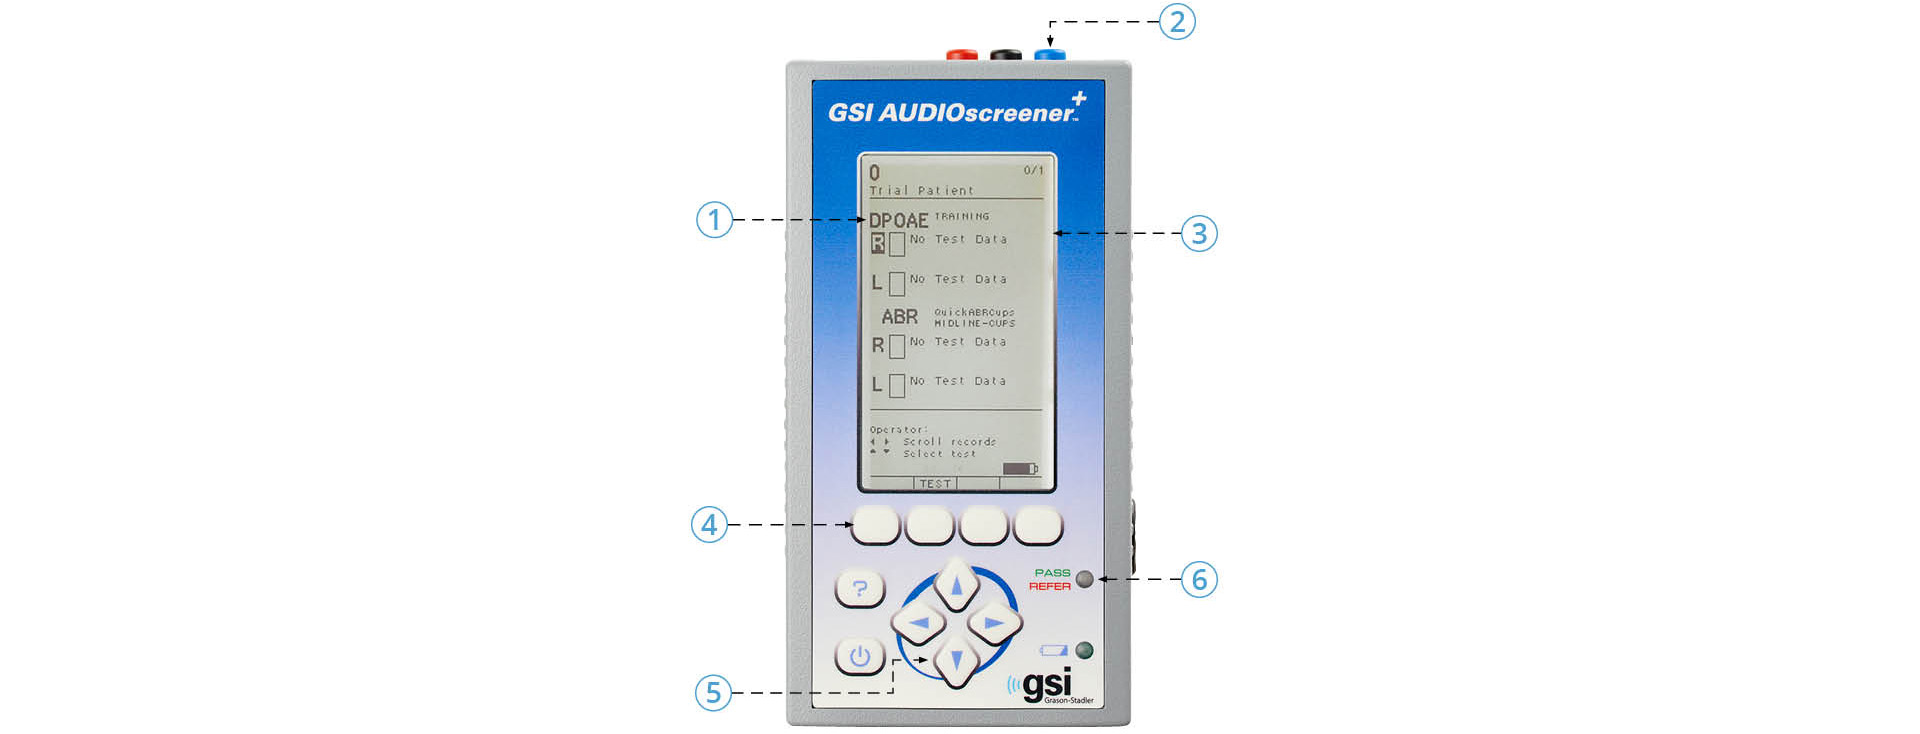 GSI Audioscreener+ Product Features